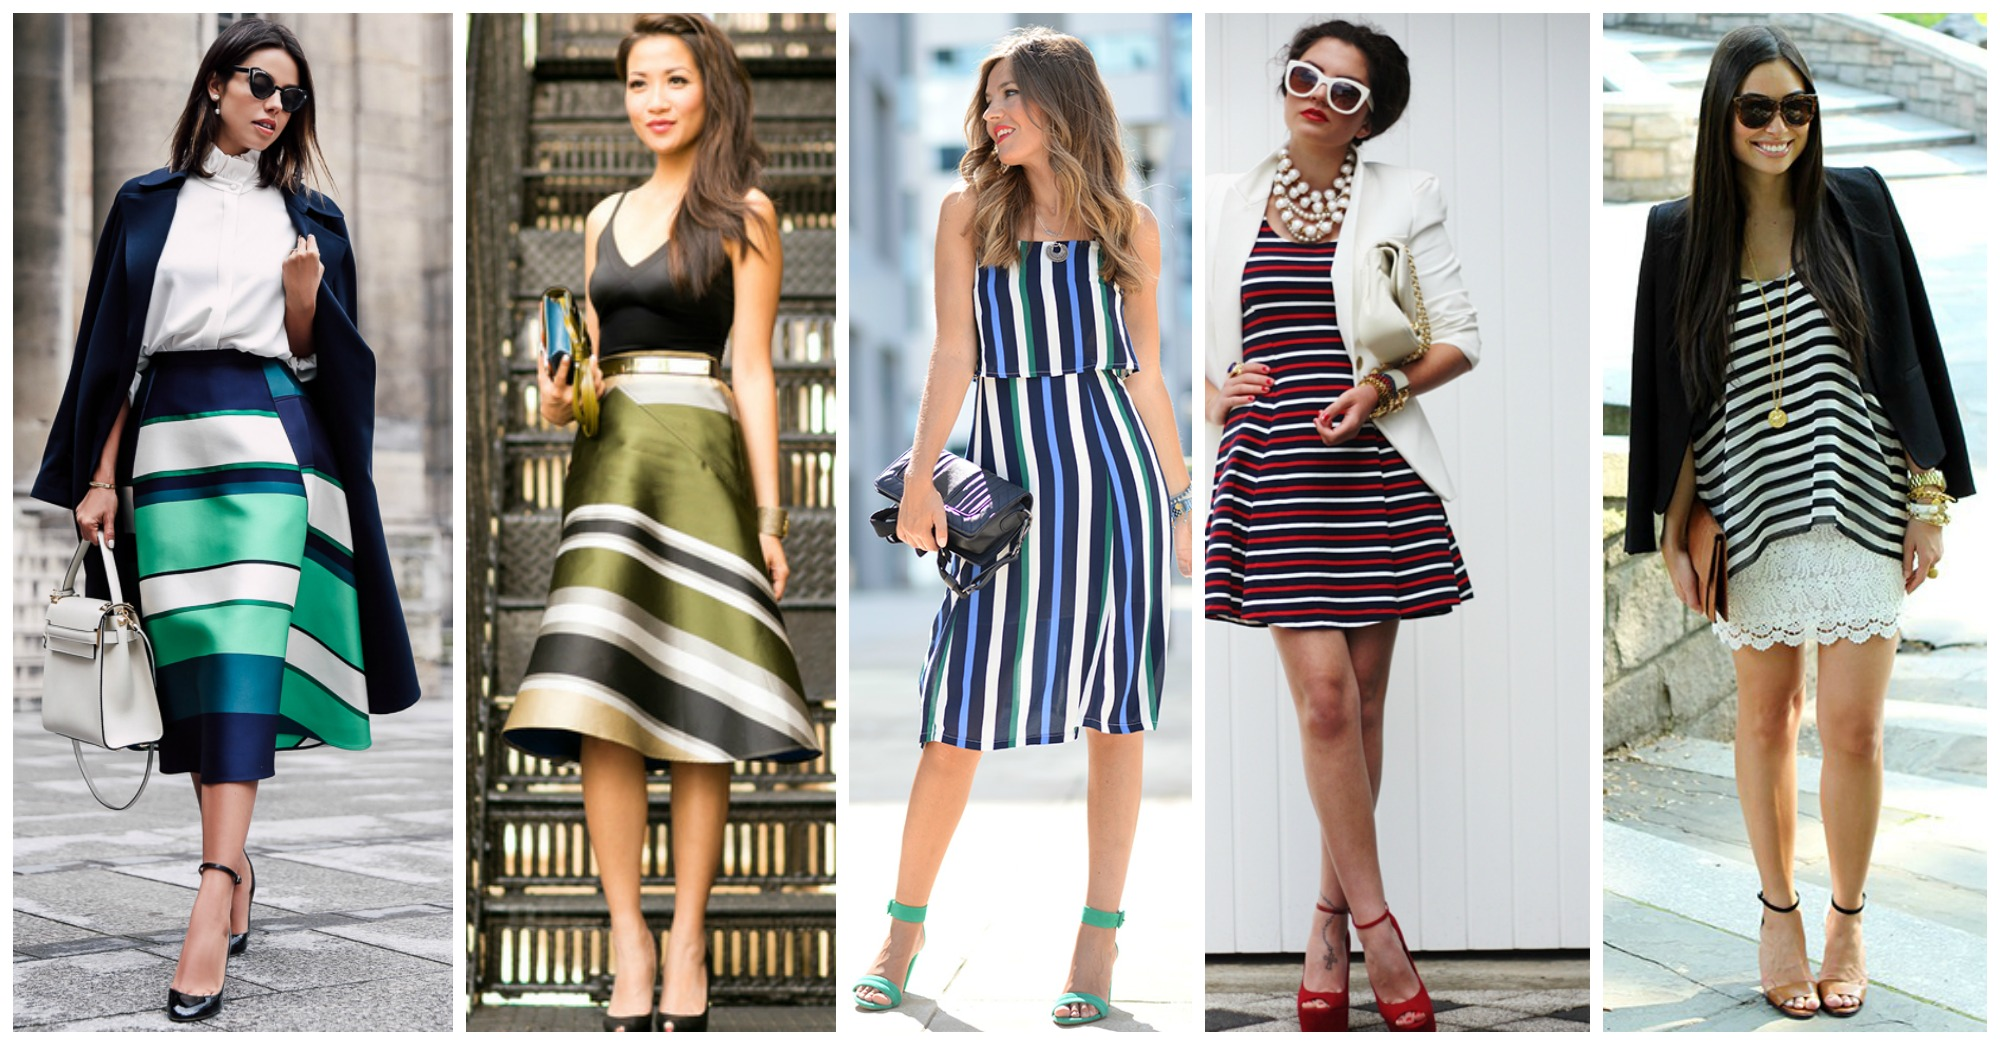 10 Fashionable Outfits to Follow the Striped Trend